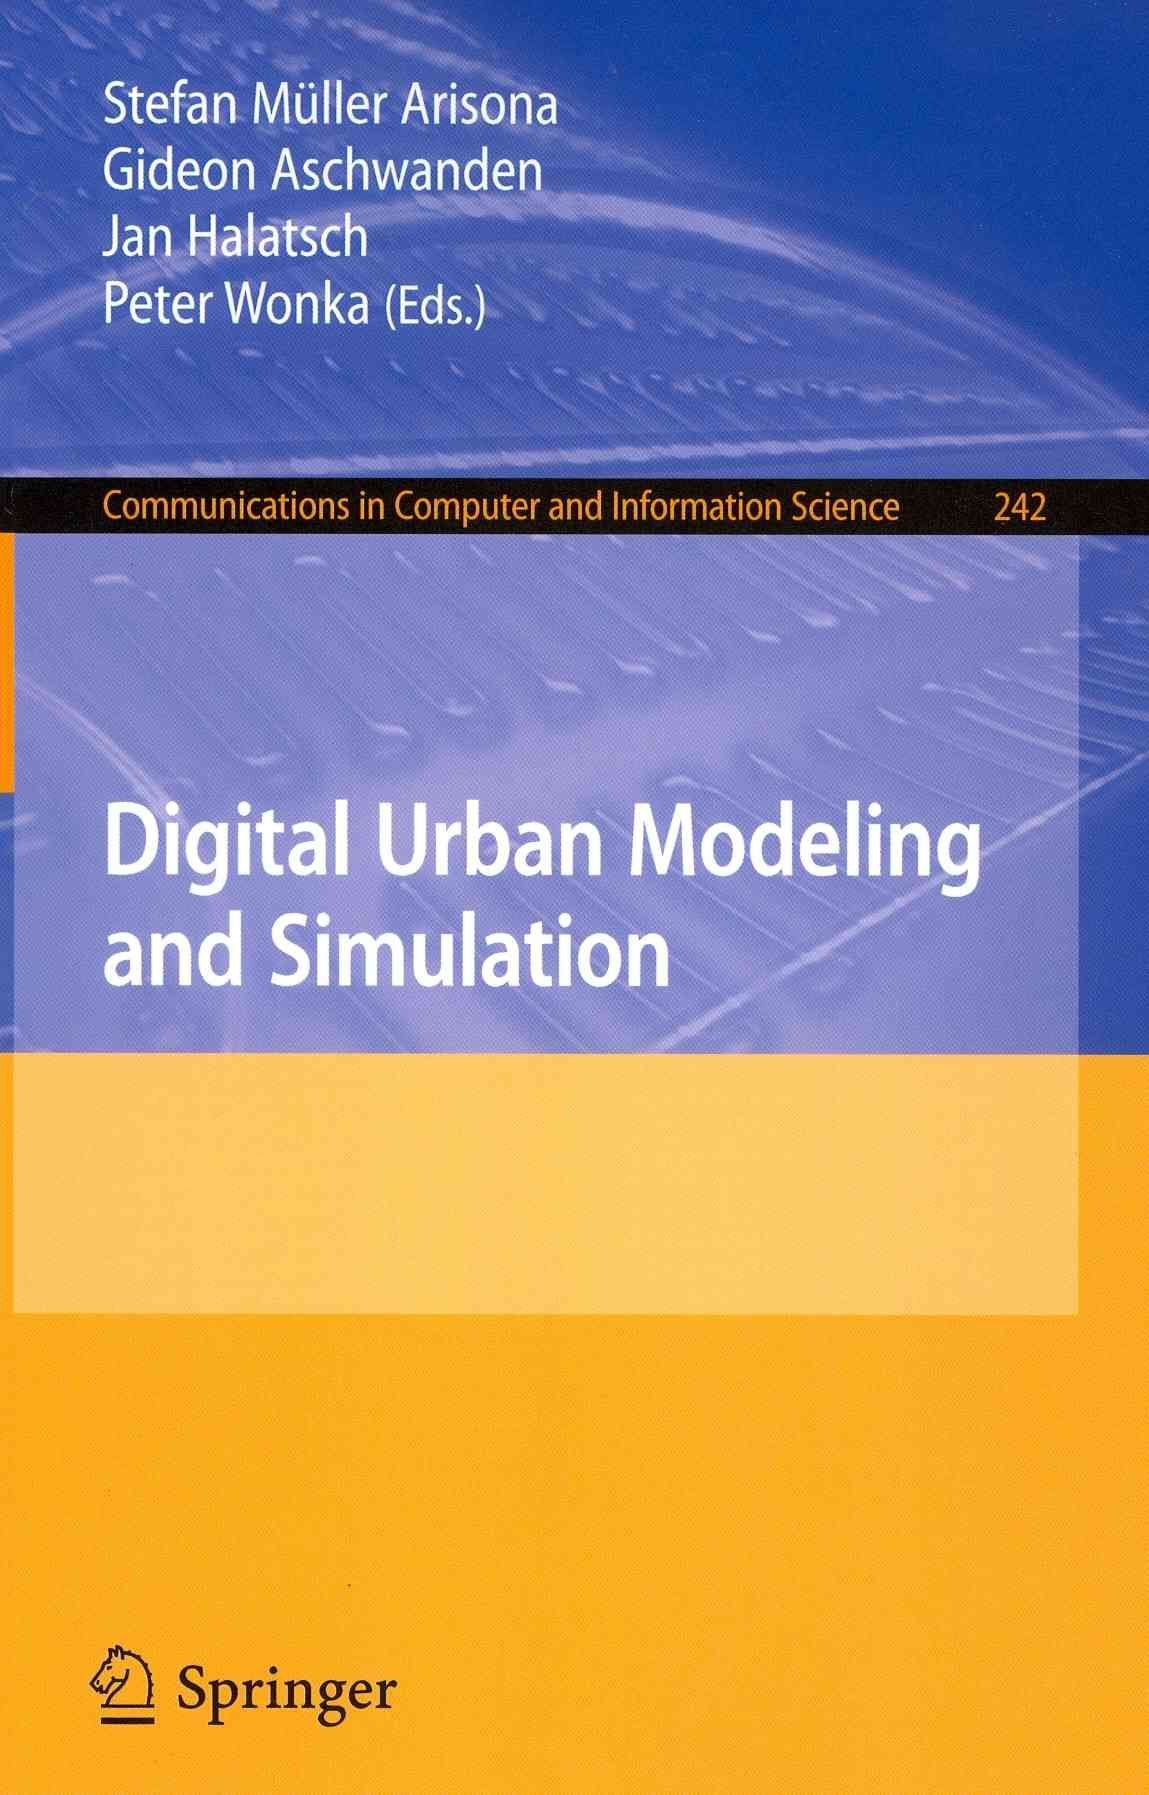 Digital Urban Modeling and Simulation - Stefan Muller Arisona